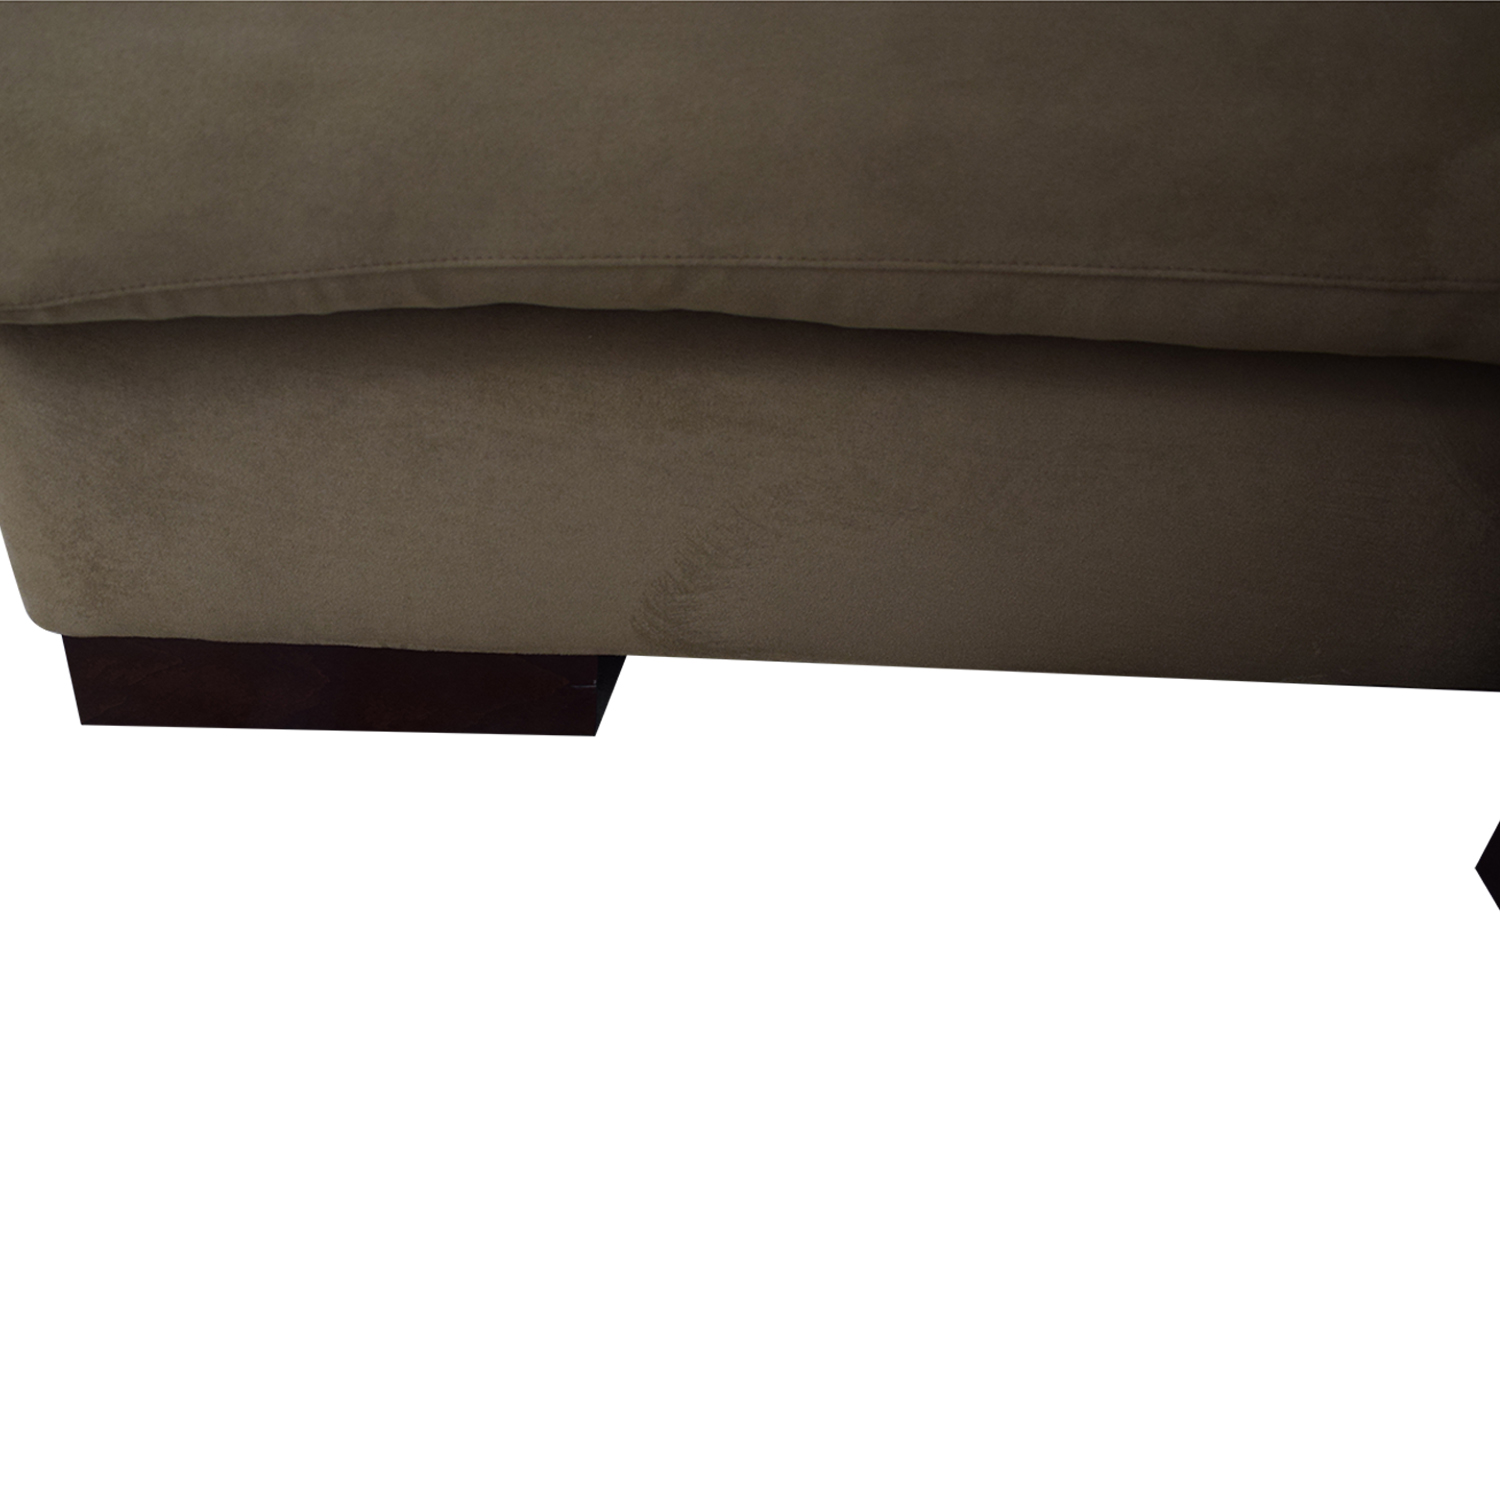 American Leather American Leather Chaise Sectional Sofa for sale